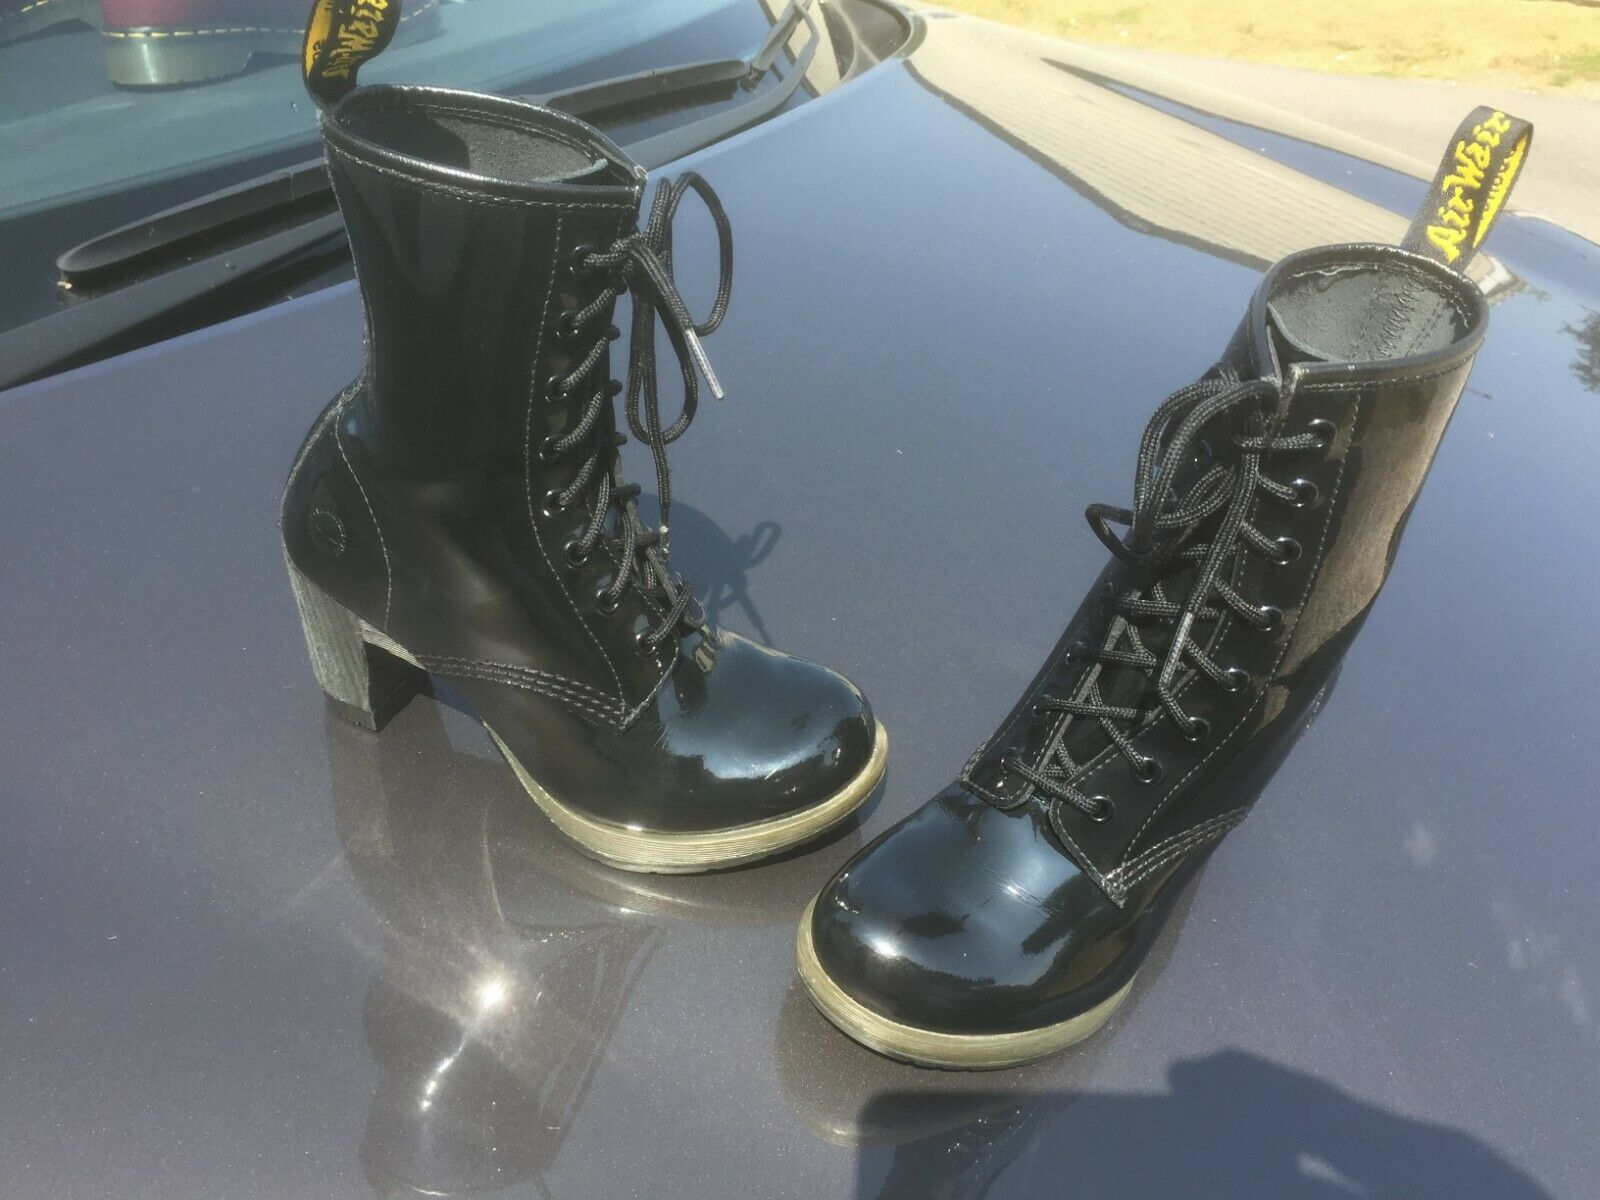 Dr Martens Darcie schwarz patent leather Stiefel UK 3 EU 36